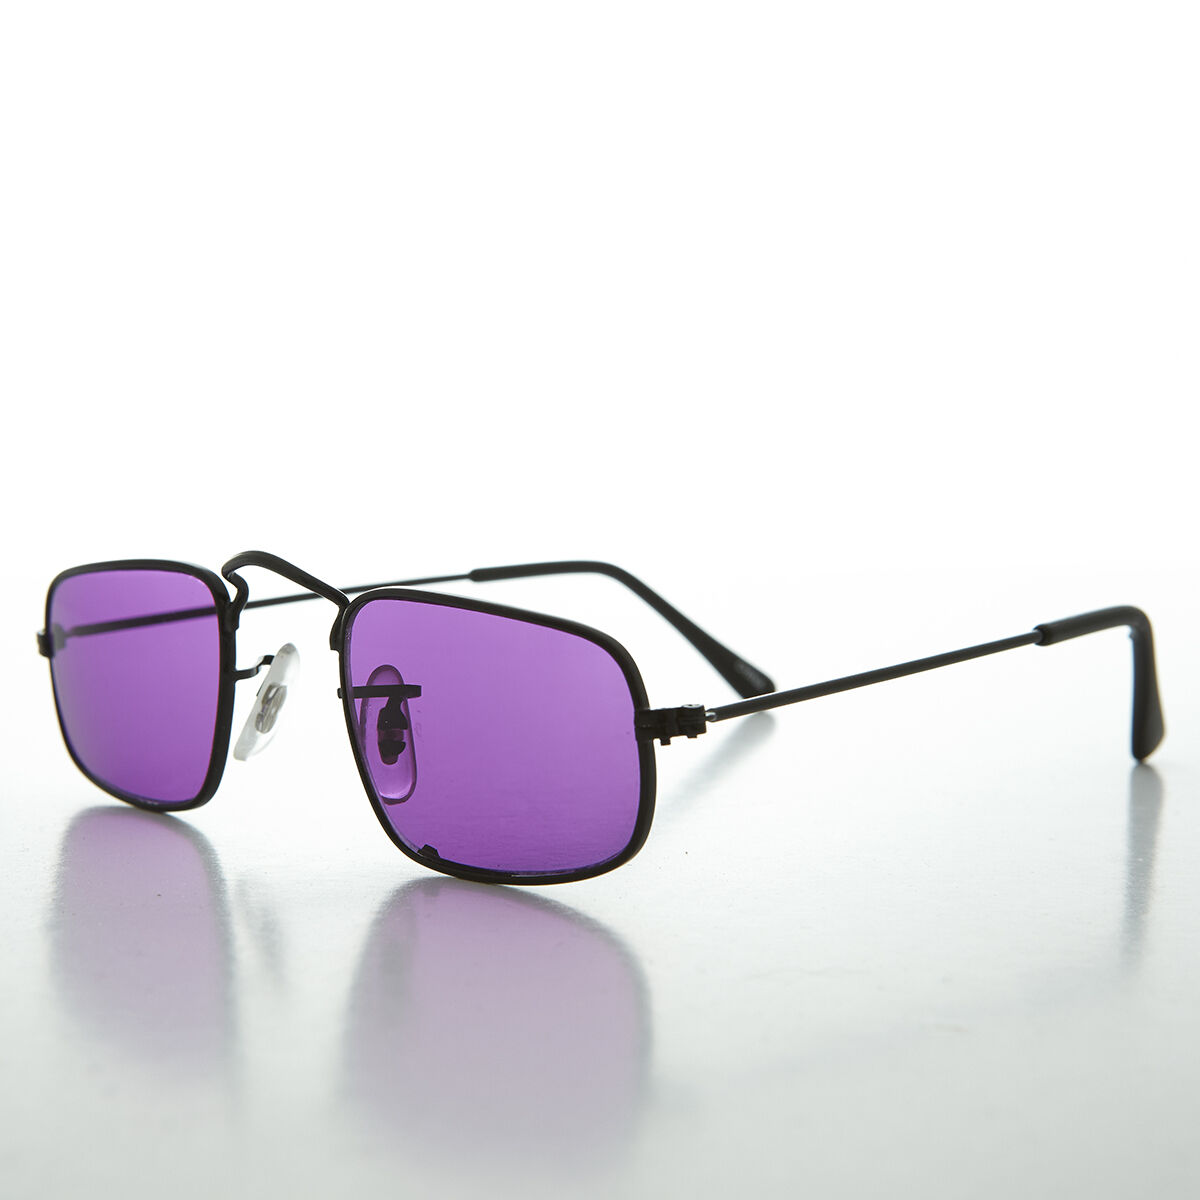 Ben Franklin Square Hippy Sunglass with Colored Lens Purple/Black - Jazz